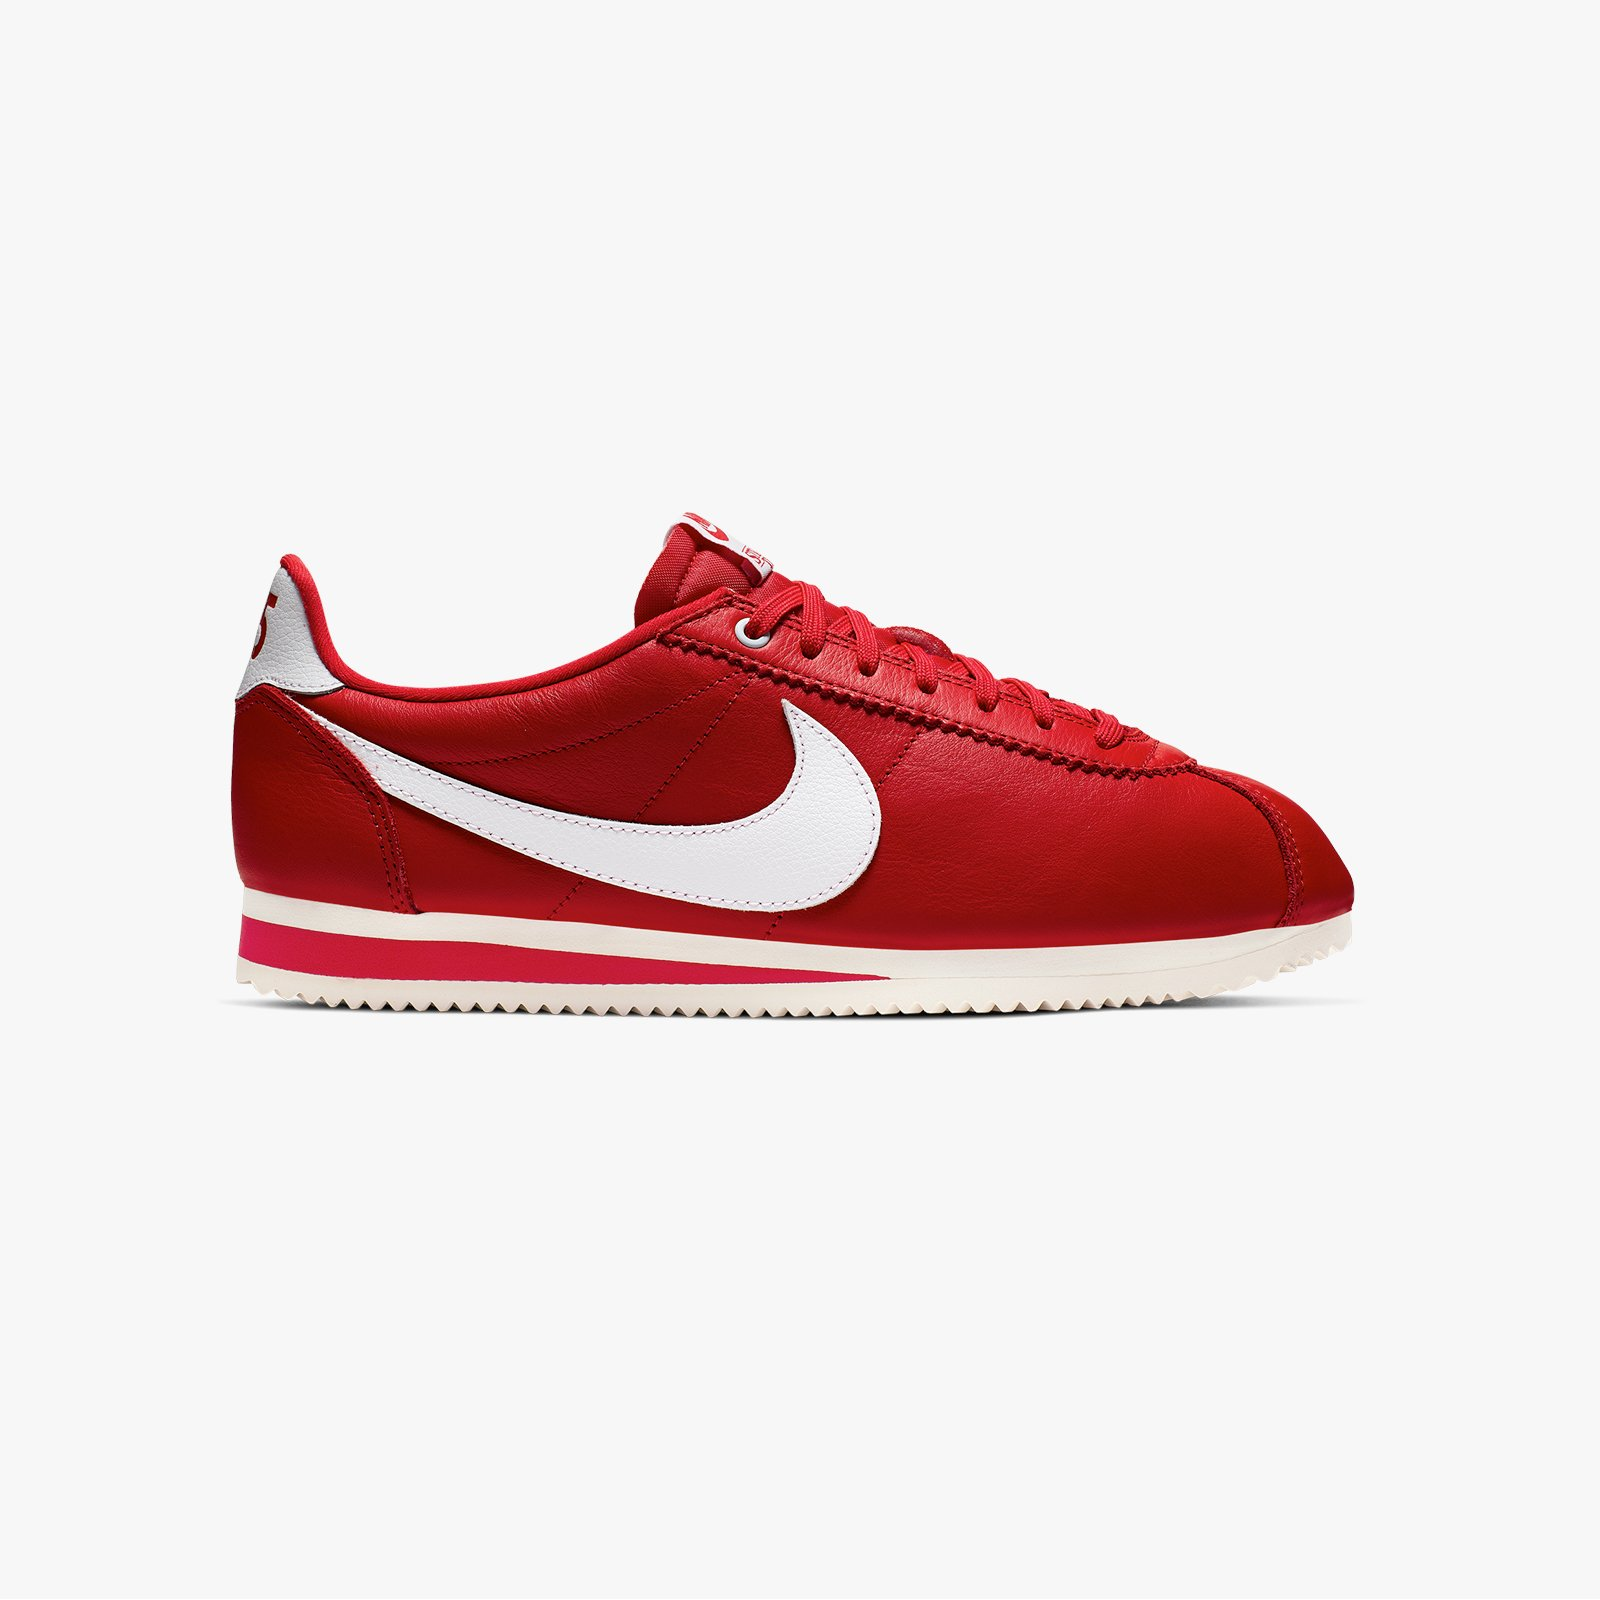 new product low price sale crazy price Nike Classic Cortez x Stranger Things - Ck1907-600 ...